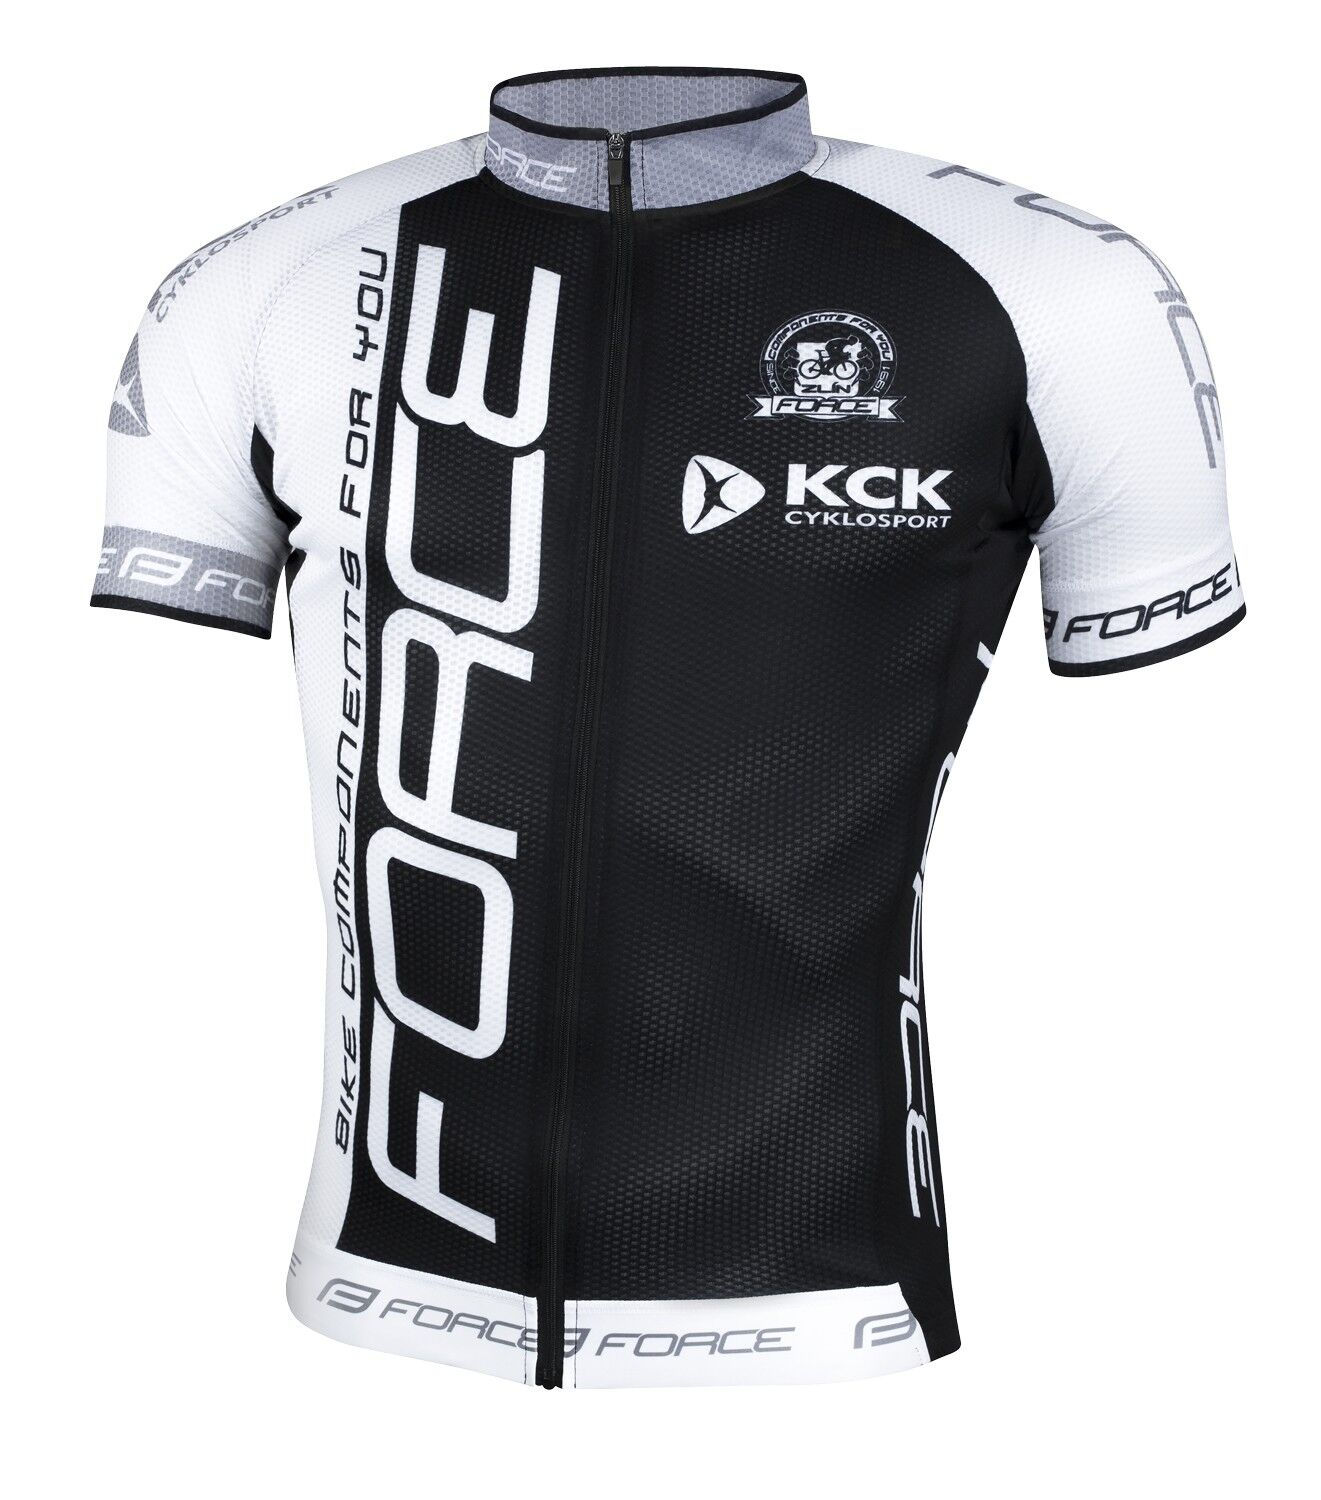 FORCE Jersey TEAM 2018 Kurzarm Kurzarm 2018 /900856 2eeb1a